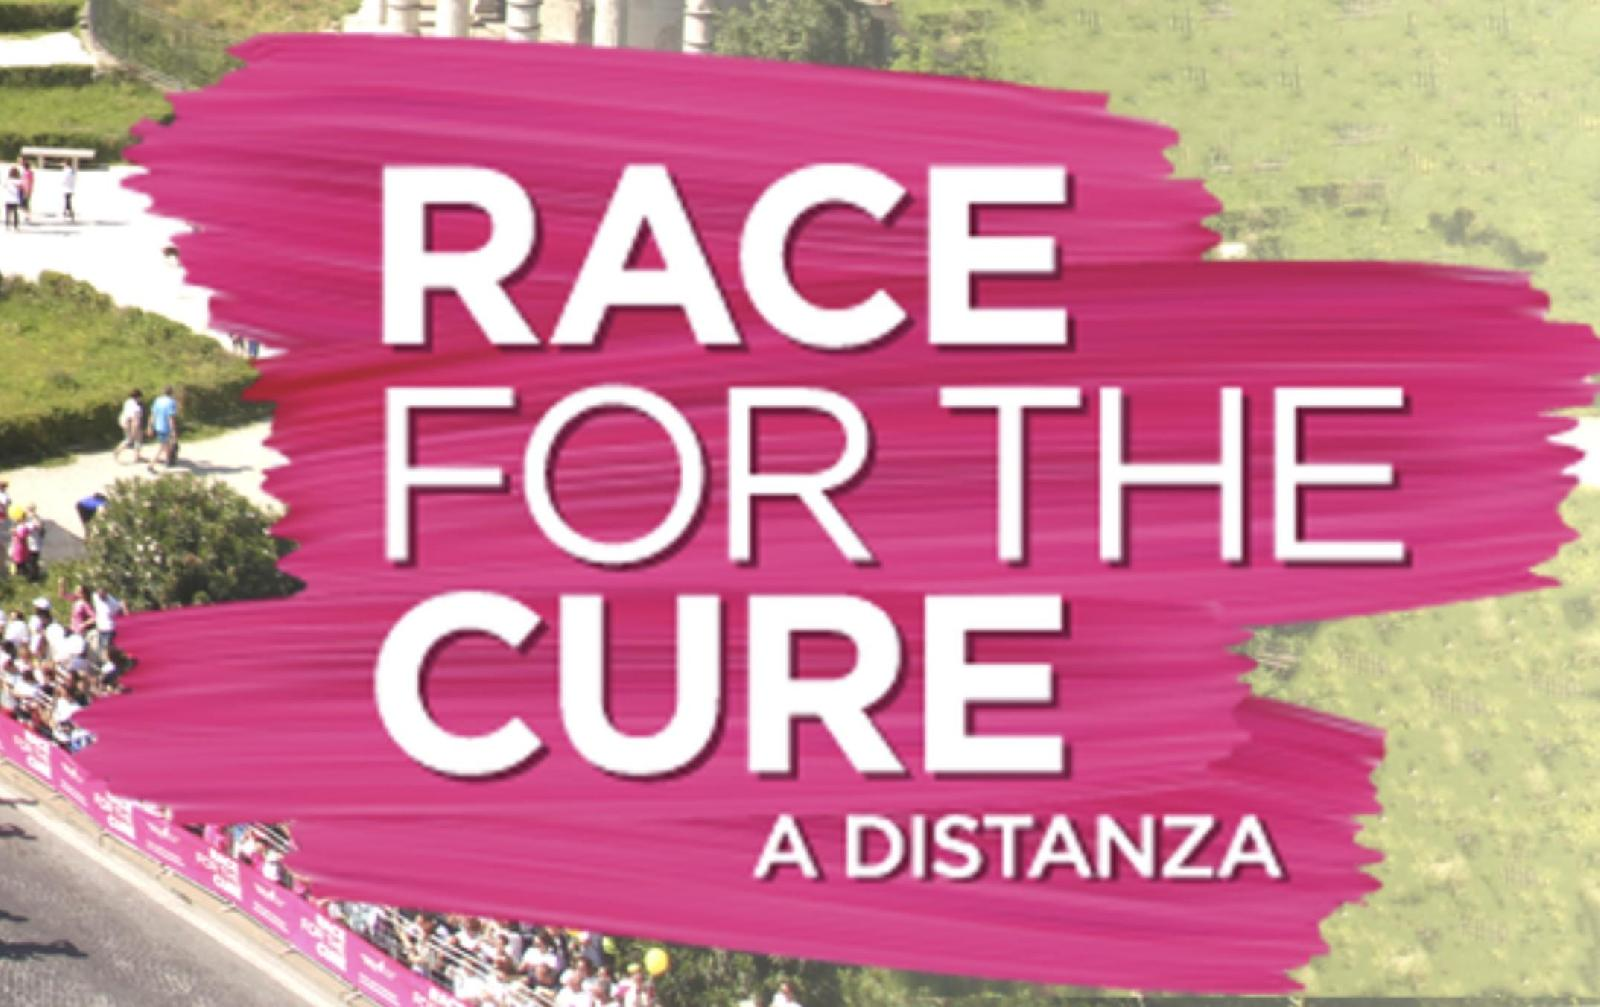 Il Covid non ferma la Race for the cure: la corsa sarà virtuale